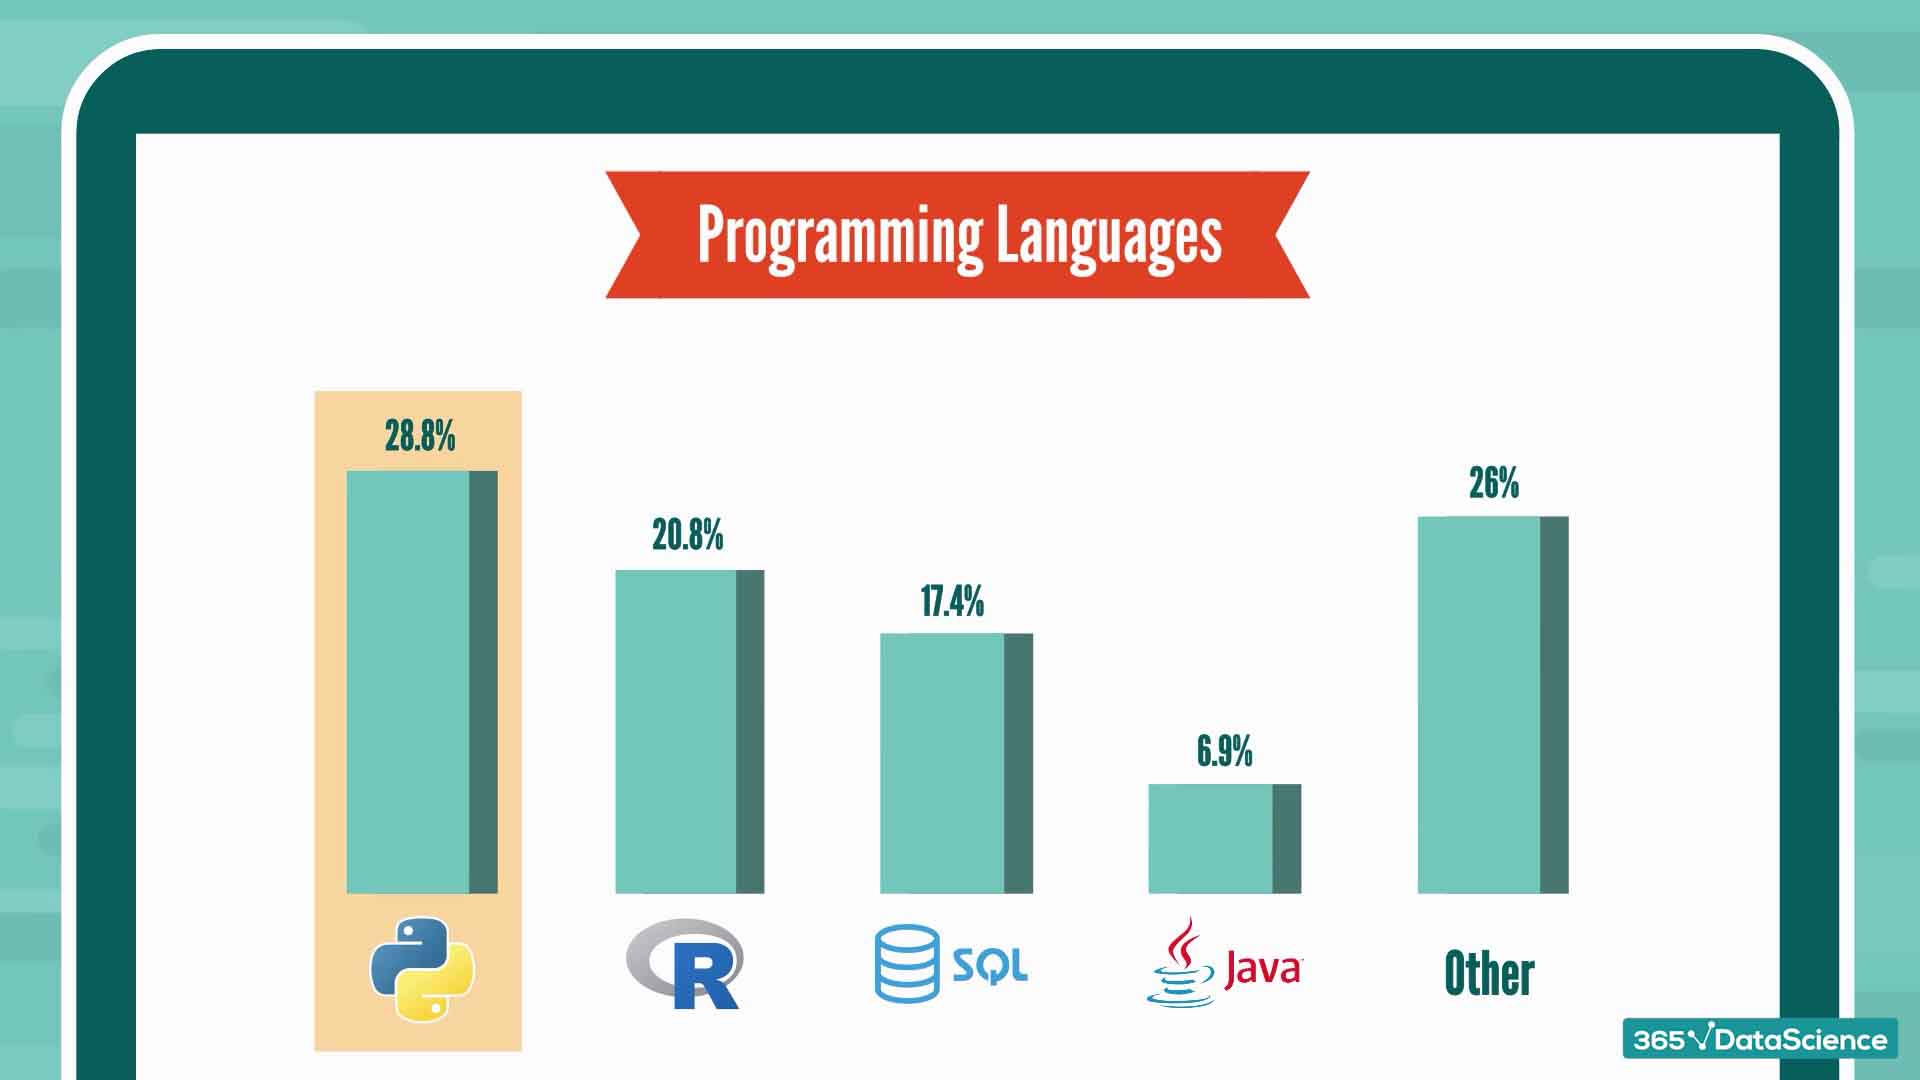 Best programming languages, according to data scientists in the UK